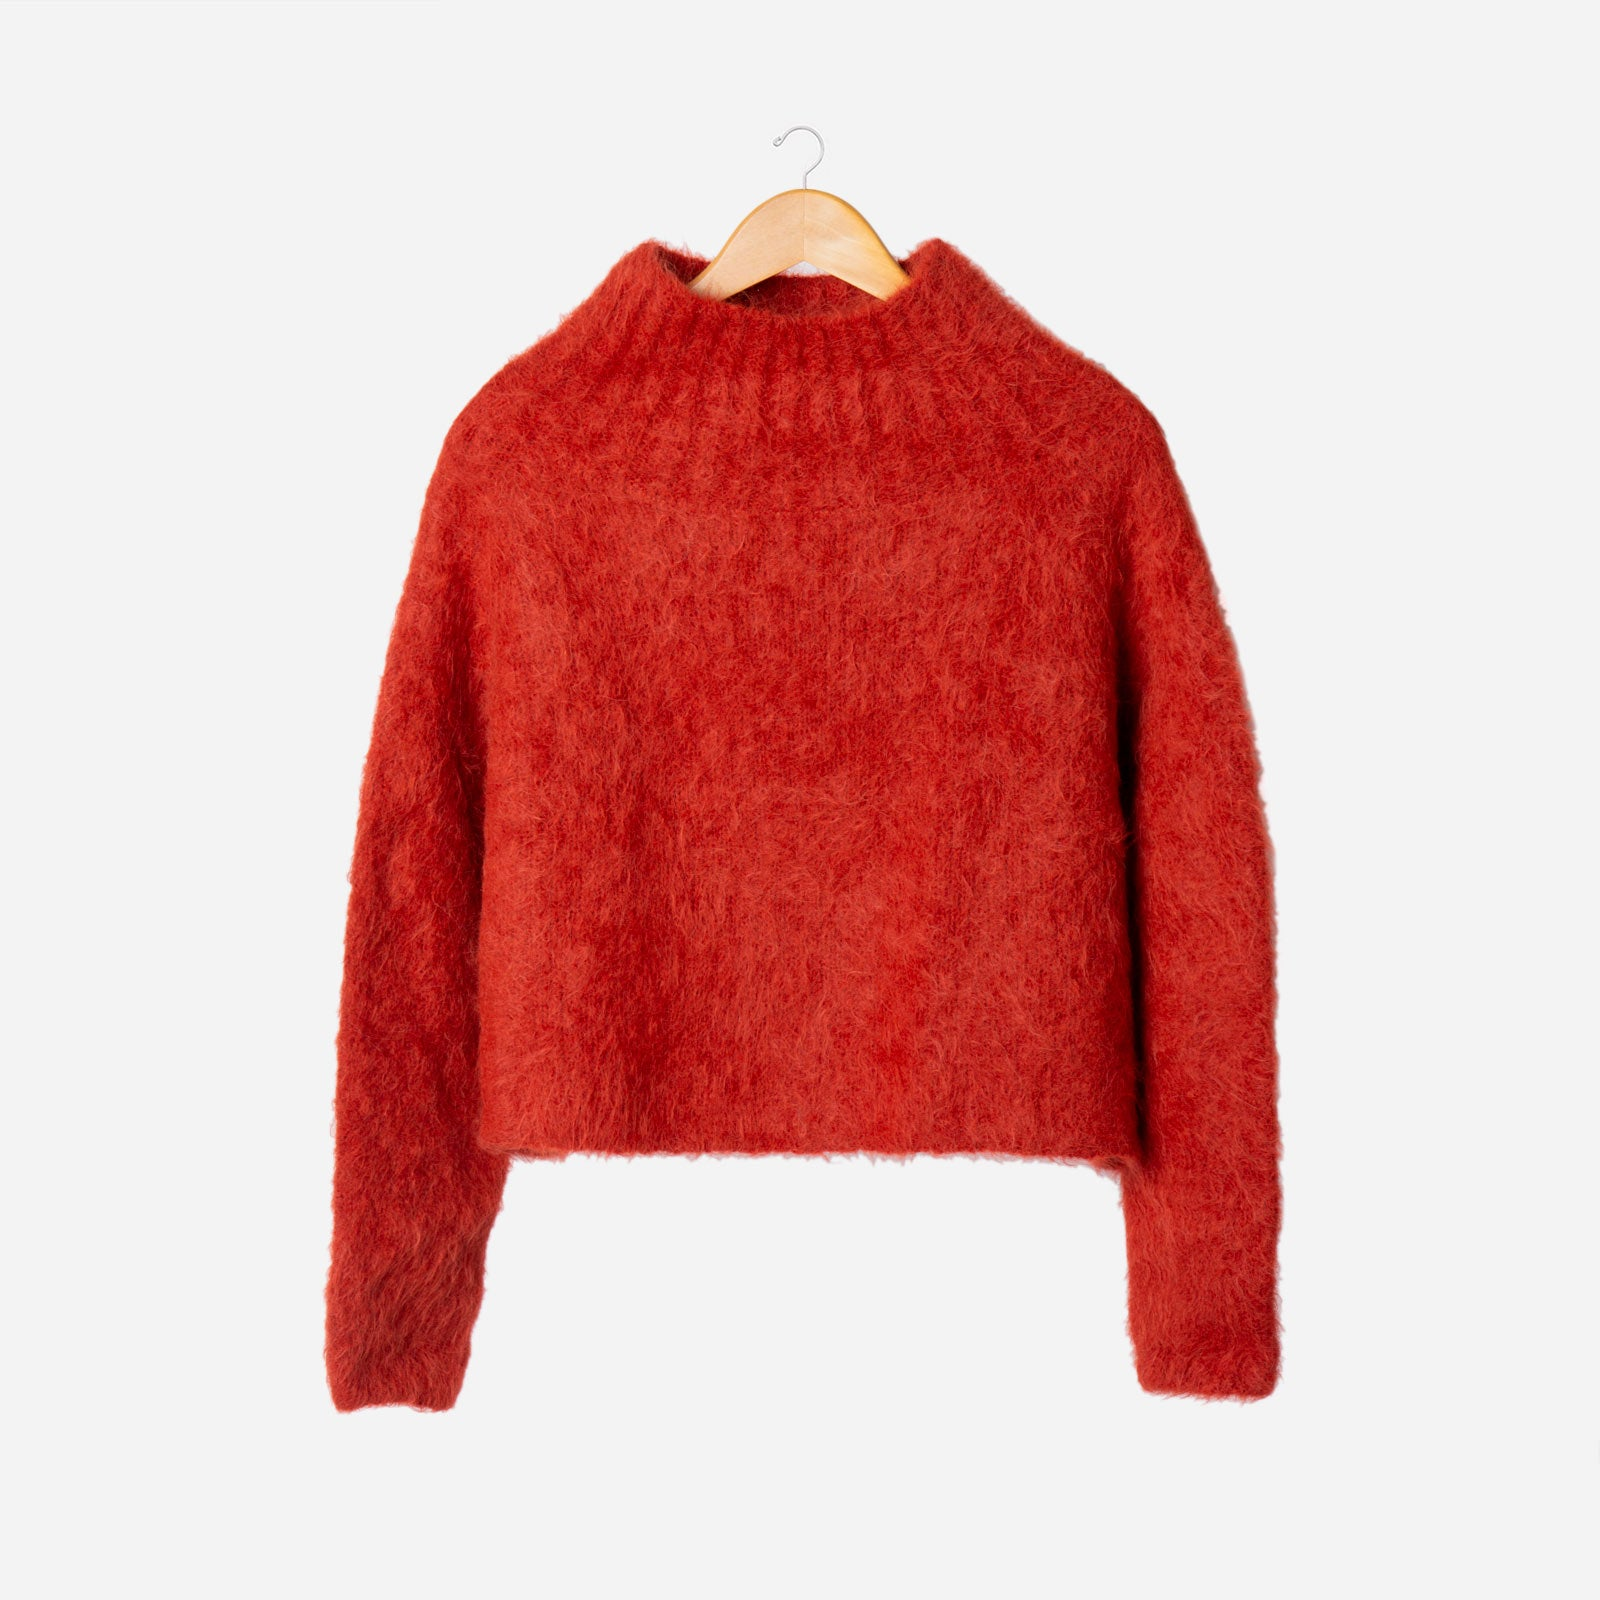 Audrey Funnel Neck Sweater Tomato